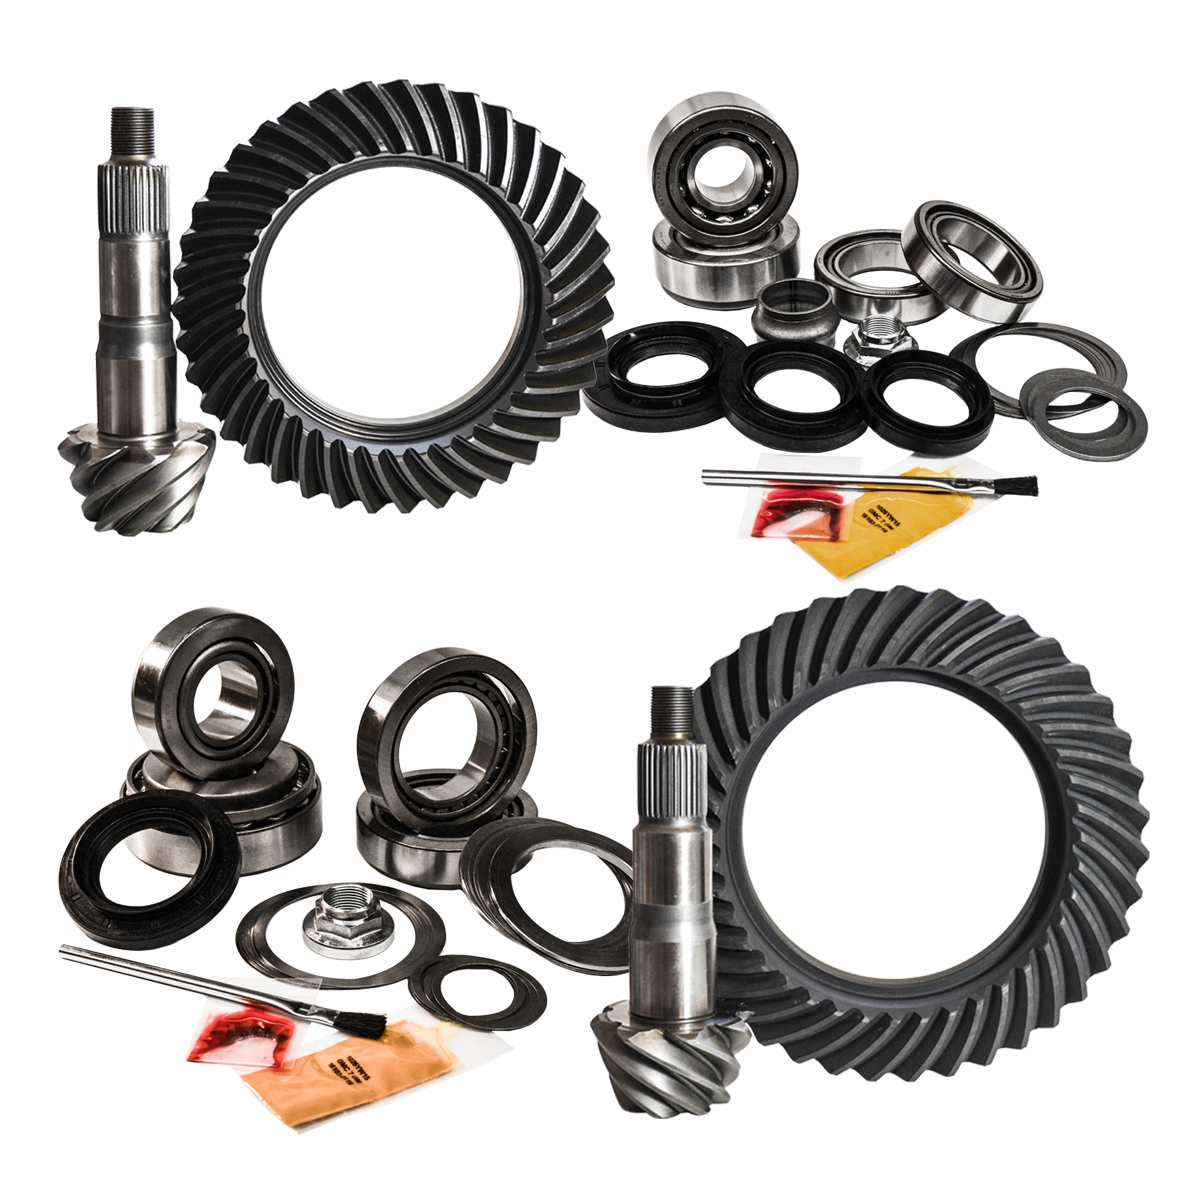 2007 & Newer Toyota Tundra 5.7L, 4.88, Nitro Gear Package Kit